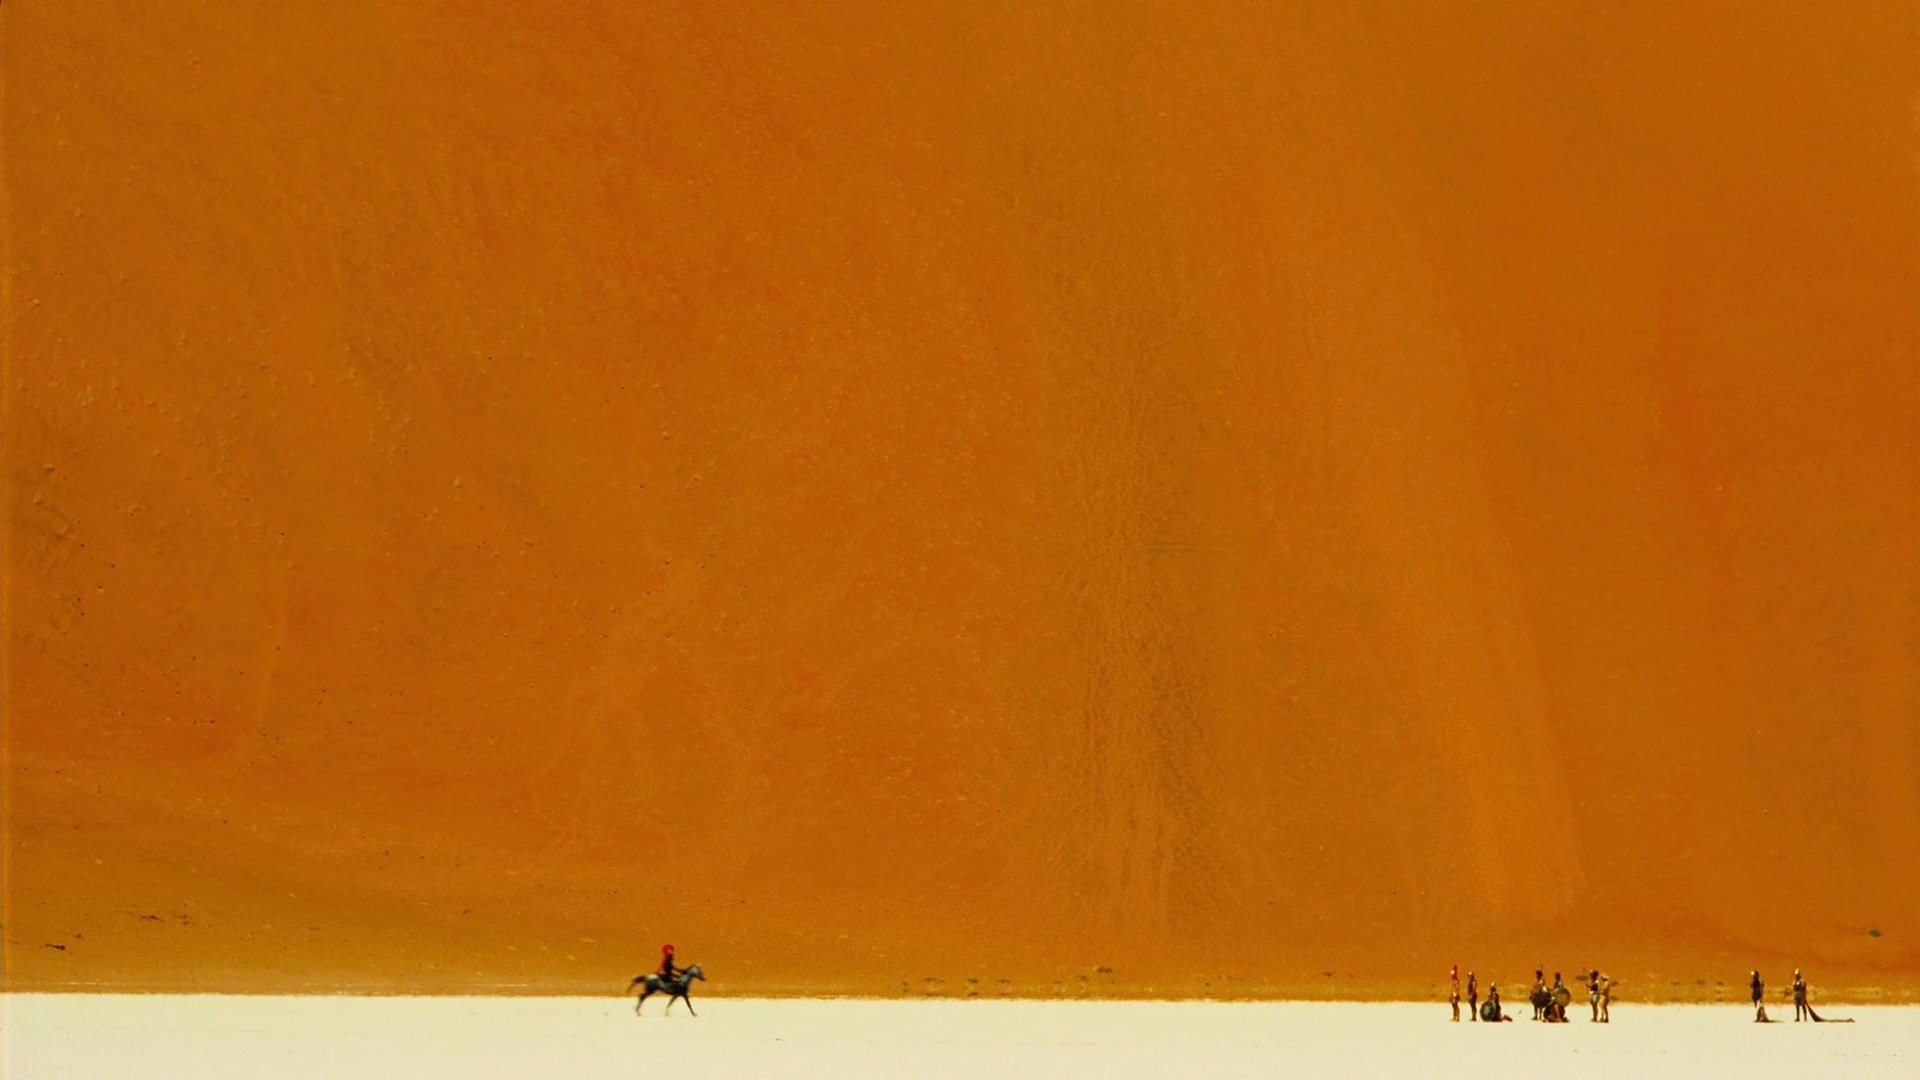 A meeting in the Namibian desert in The Fall (2006)